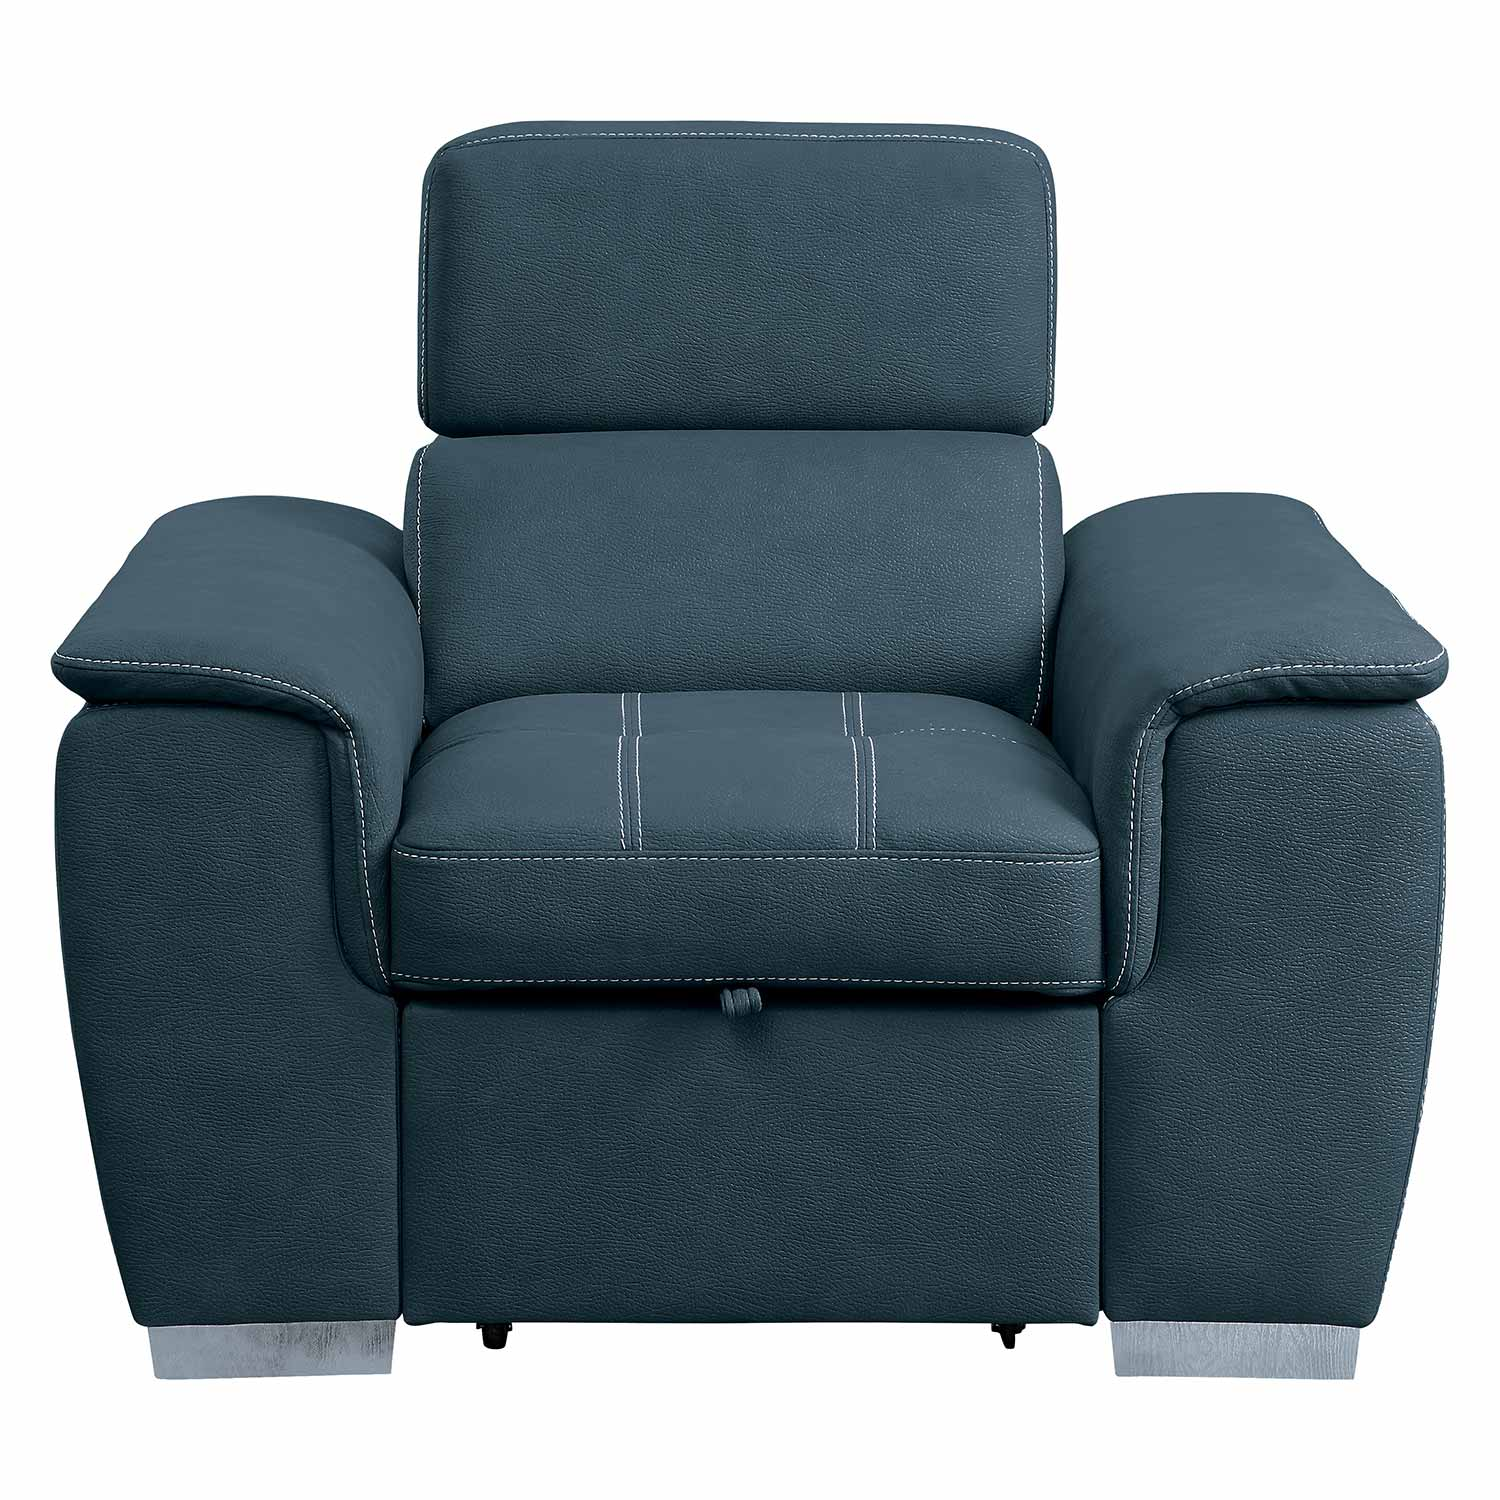 Homelegance Ferriday Chair with Pull-out Ottoman - Blue